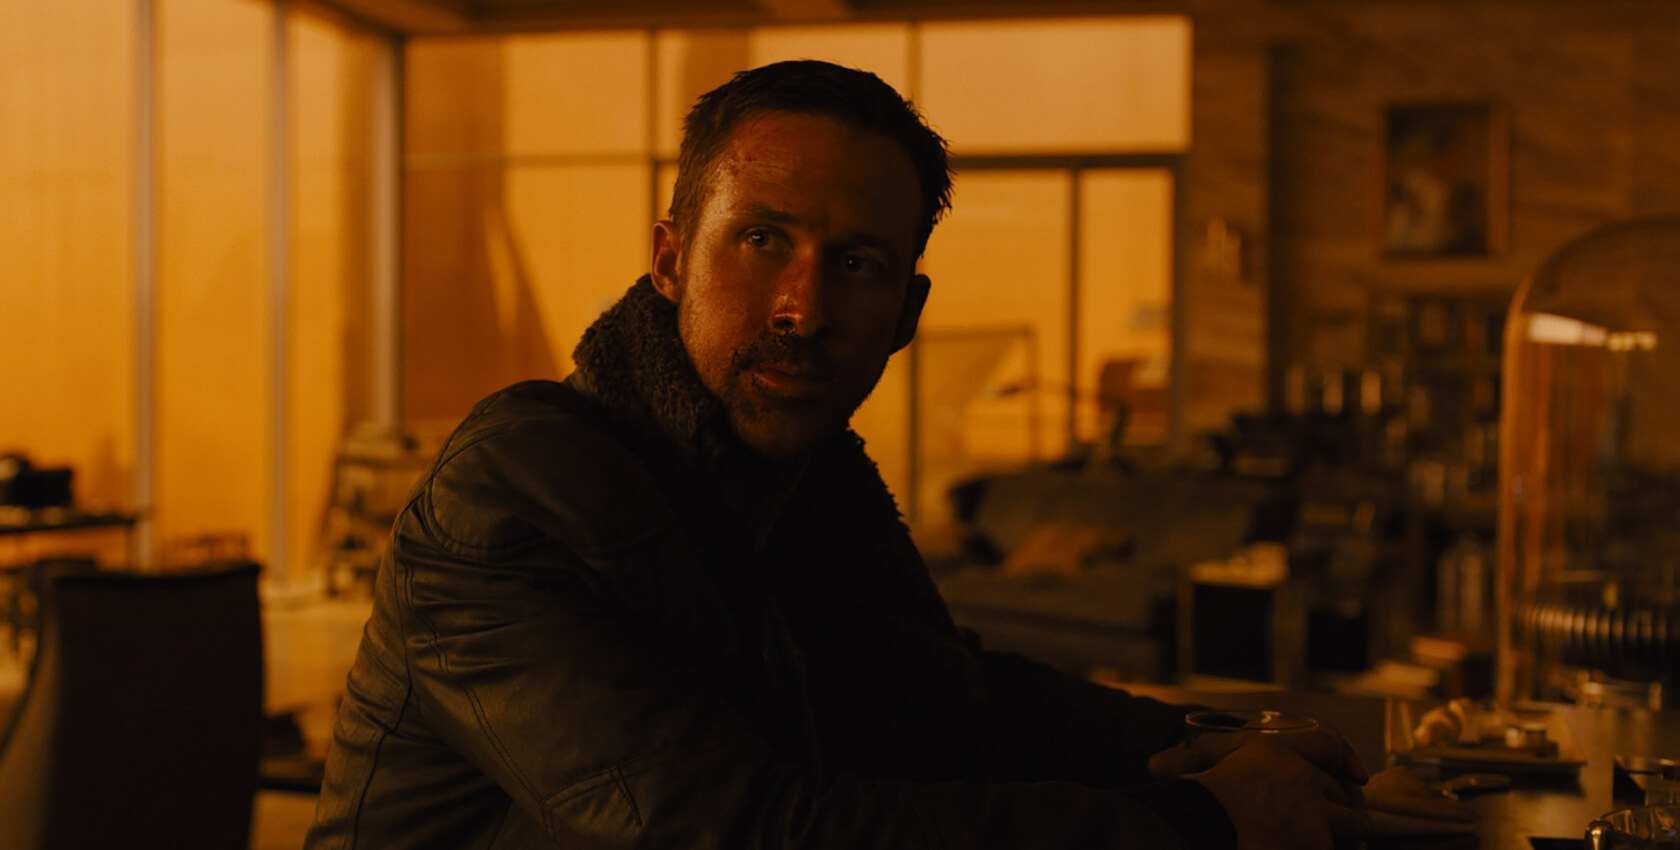 Excellent reviews don't stop Blade Runner 2049 from bombing at the box office